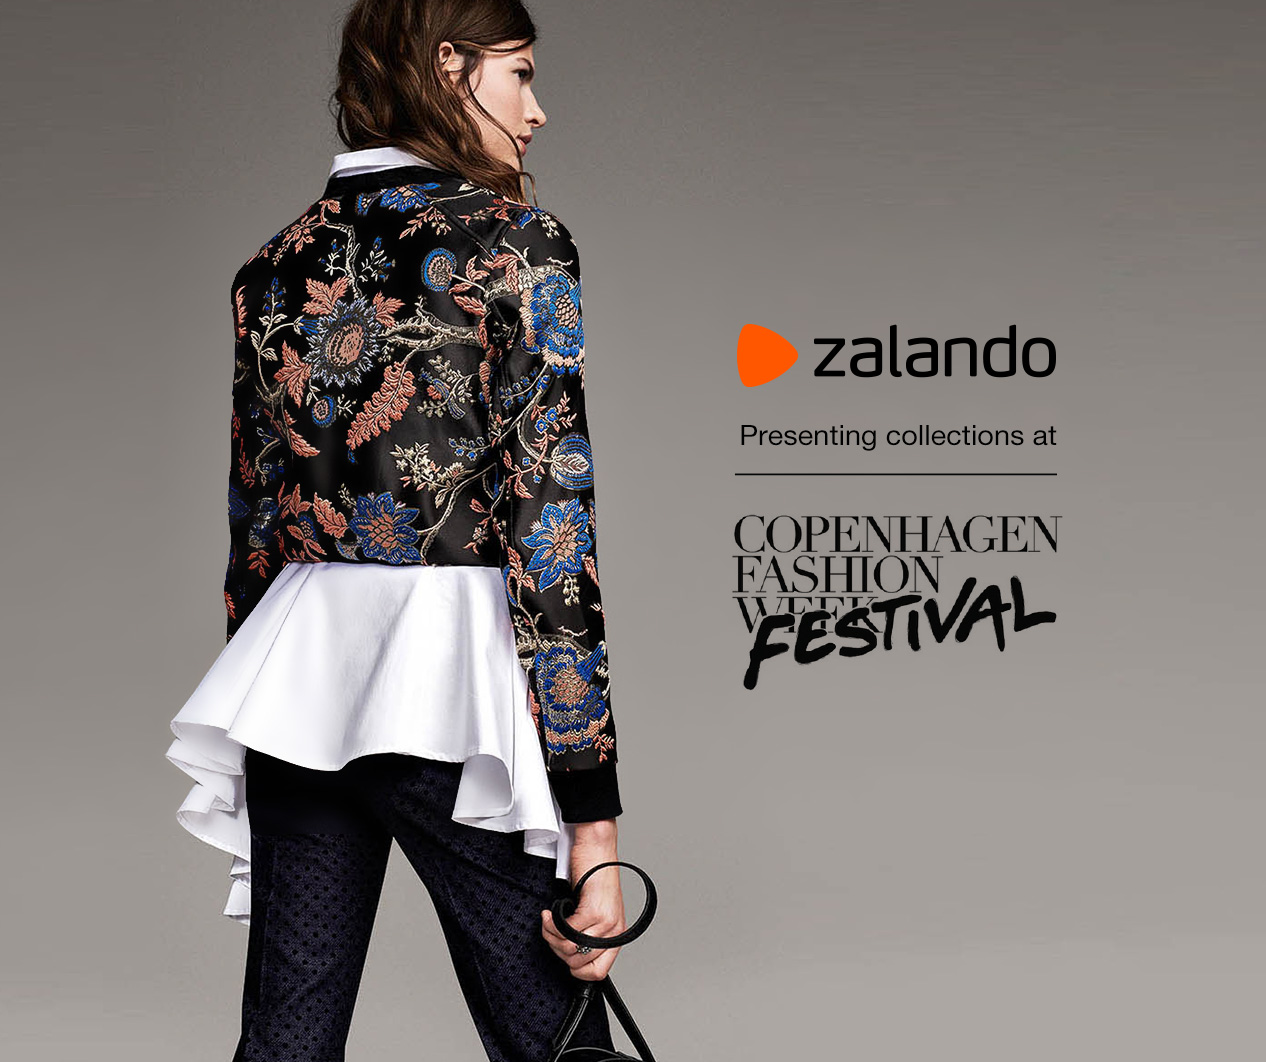 Zalando shows the future trends on a fashionshow the 11th of August 2016 in Copenhagen City hall.